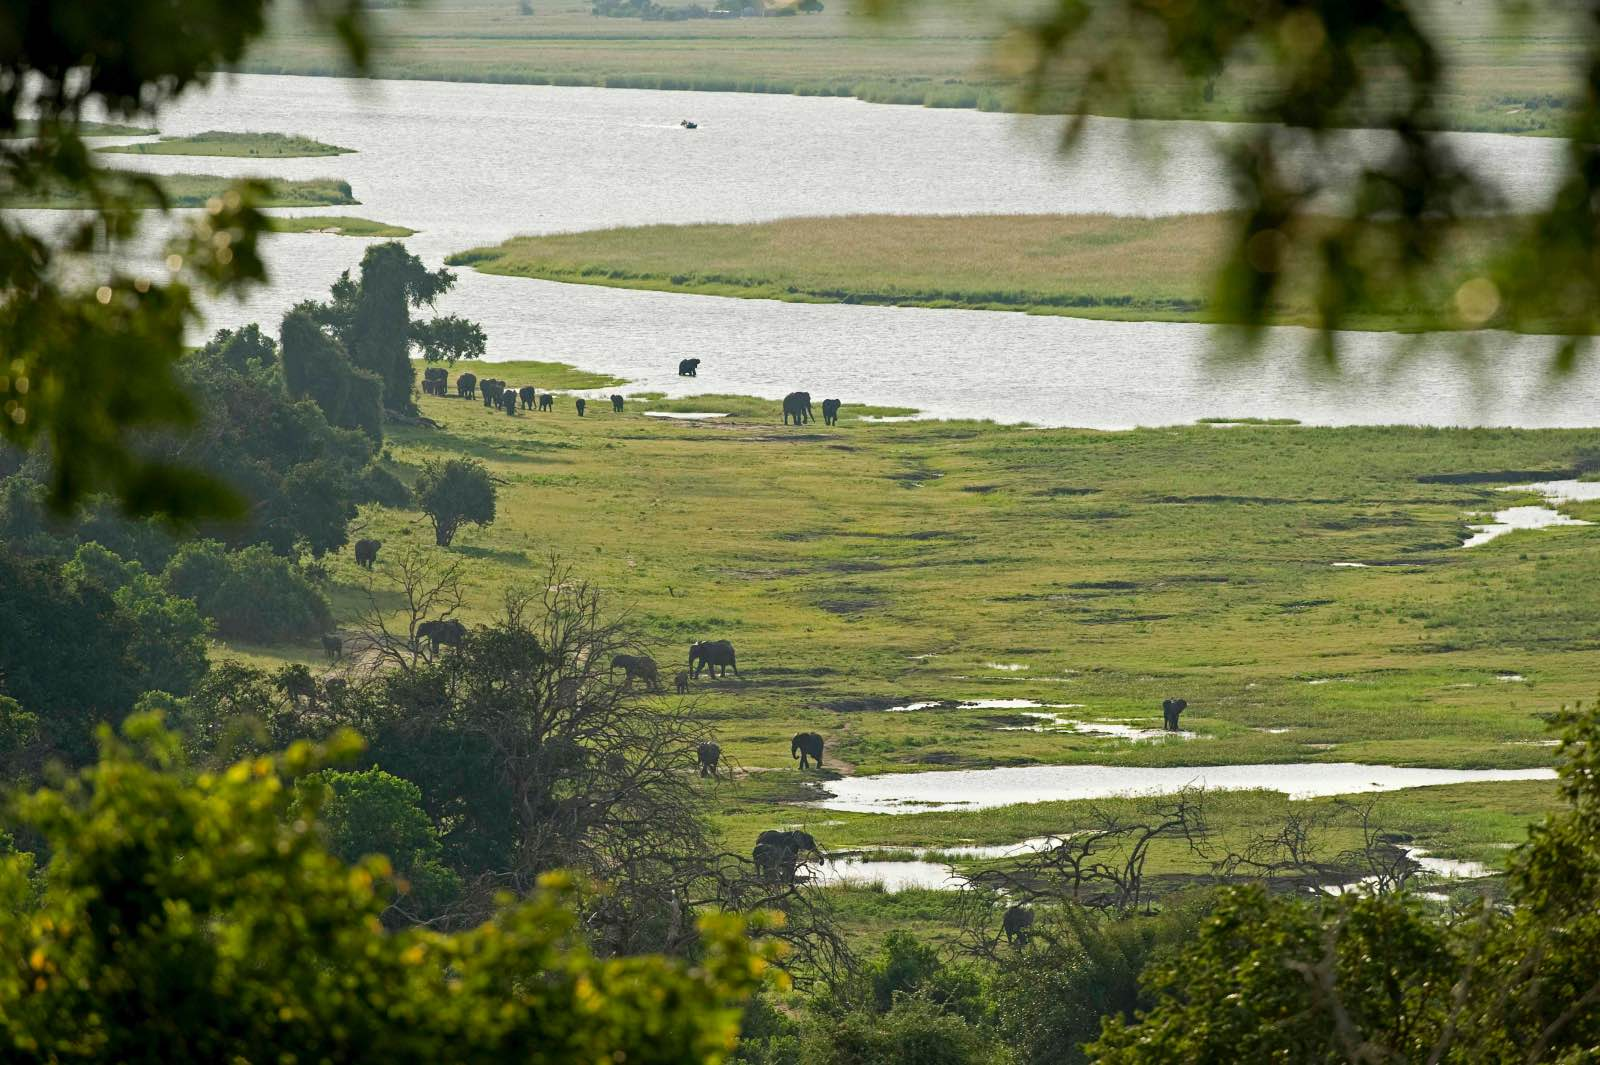 View through the trees from Chobe Chilwero down to the river and wildlife below